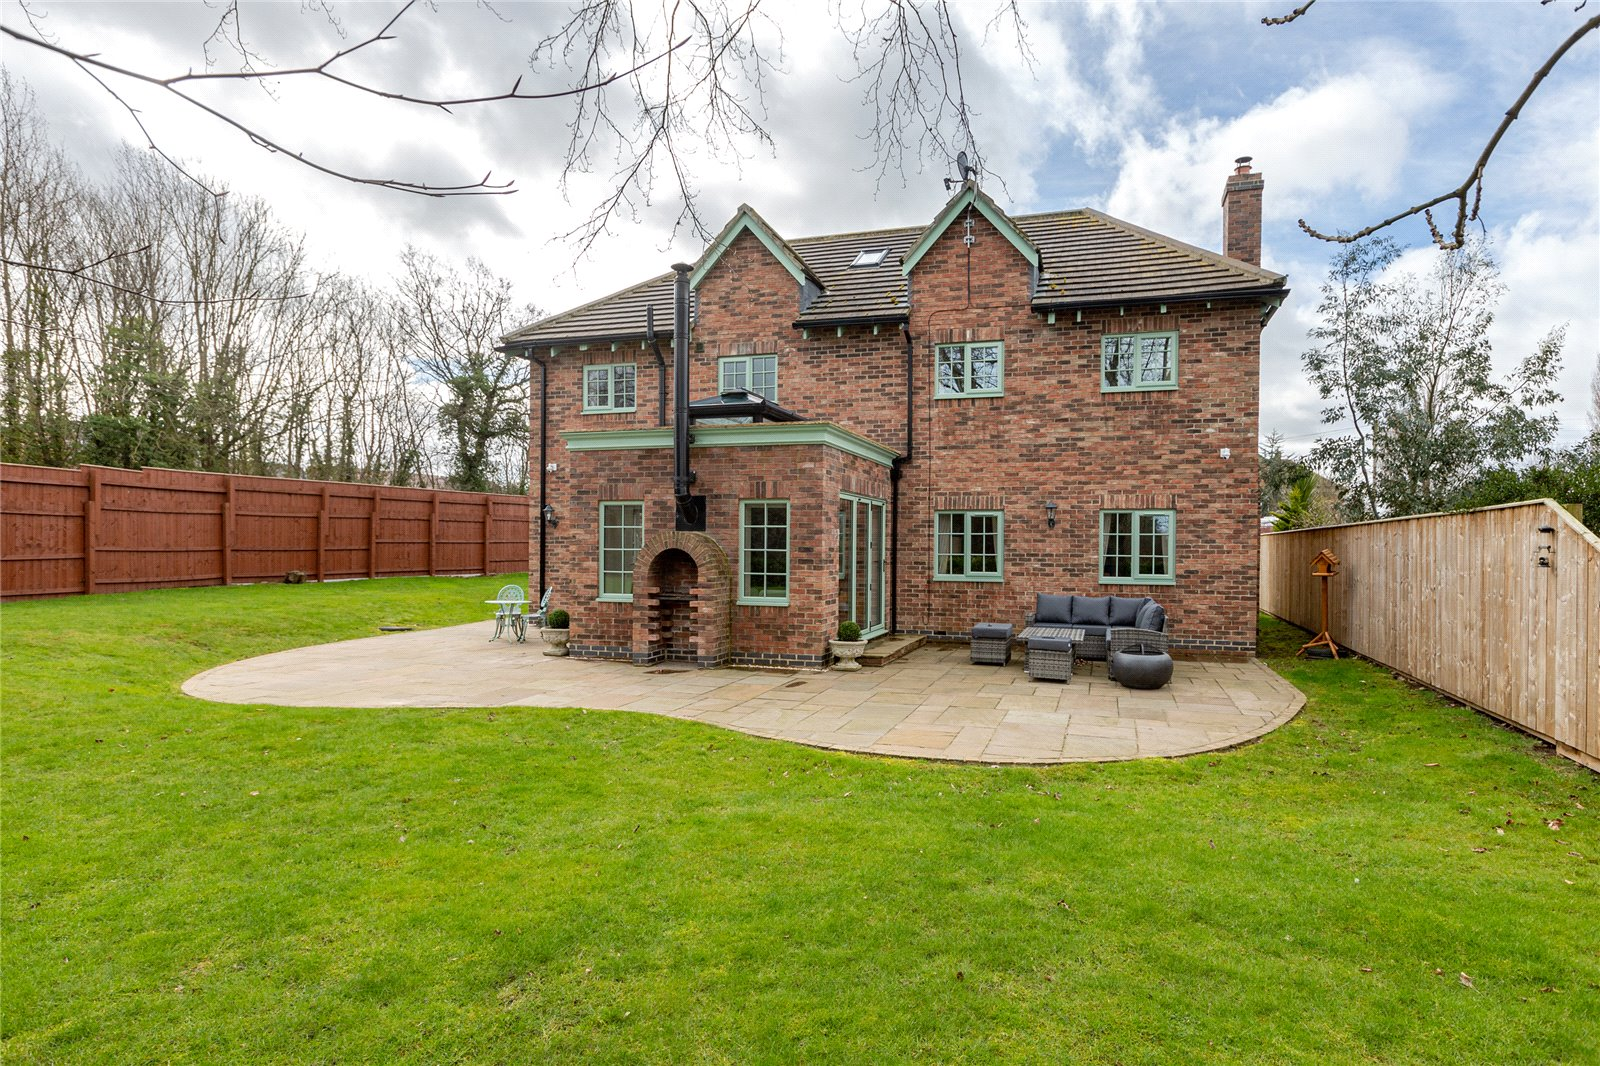 6 bed house for sale in Ladgate Lane, Middlesbrough  - Property Image 2